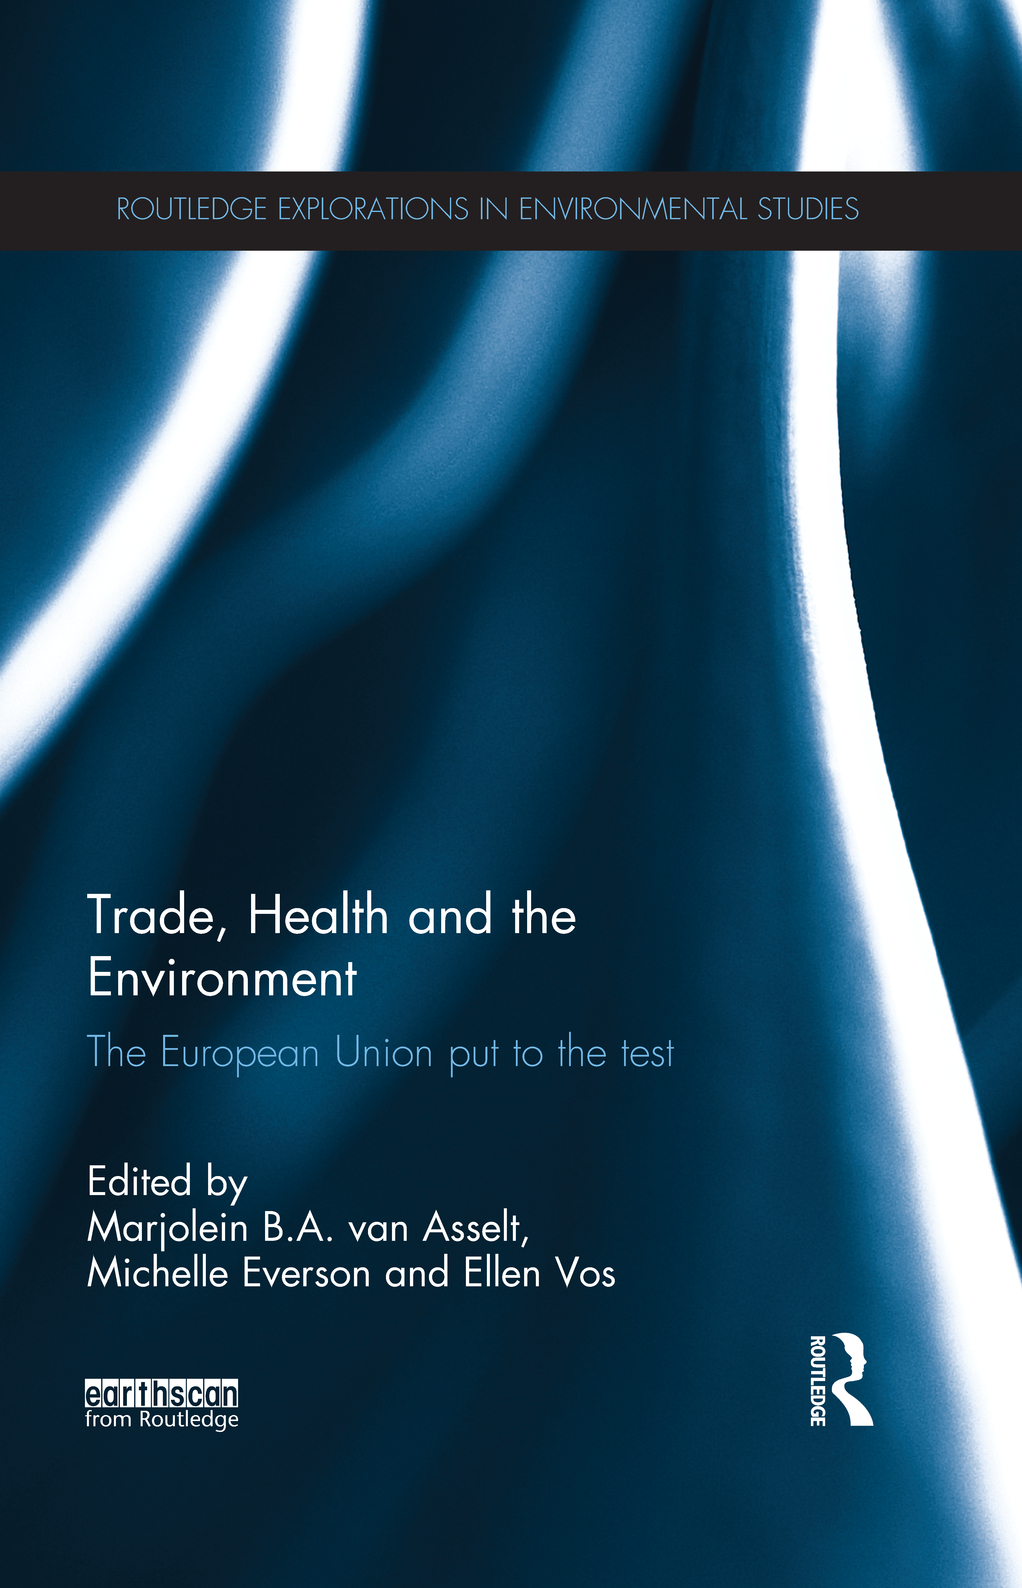 trade,  health and the environment The European Union Put to the Test